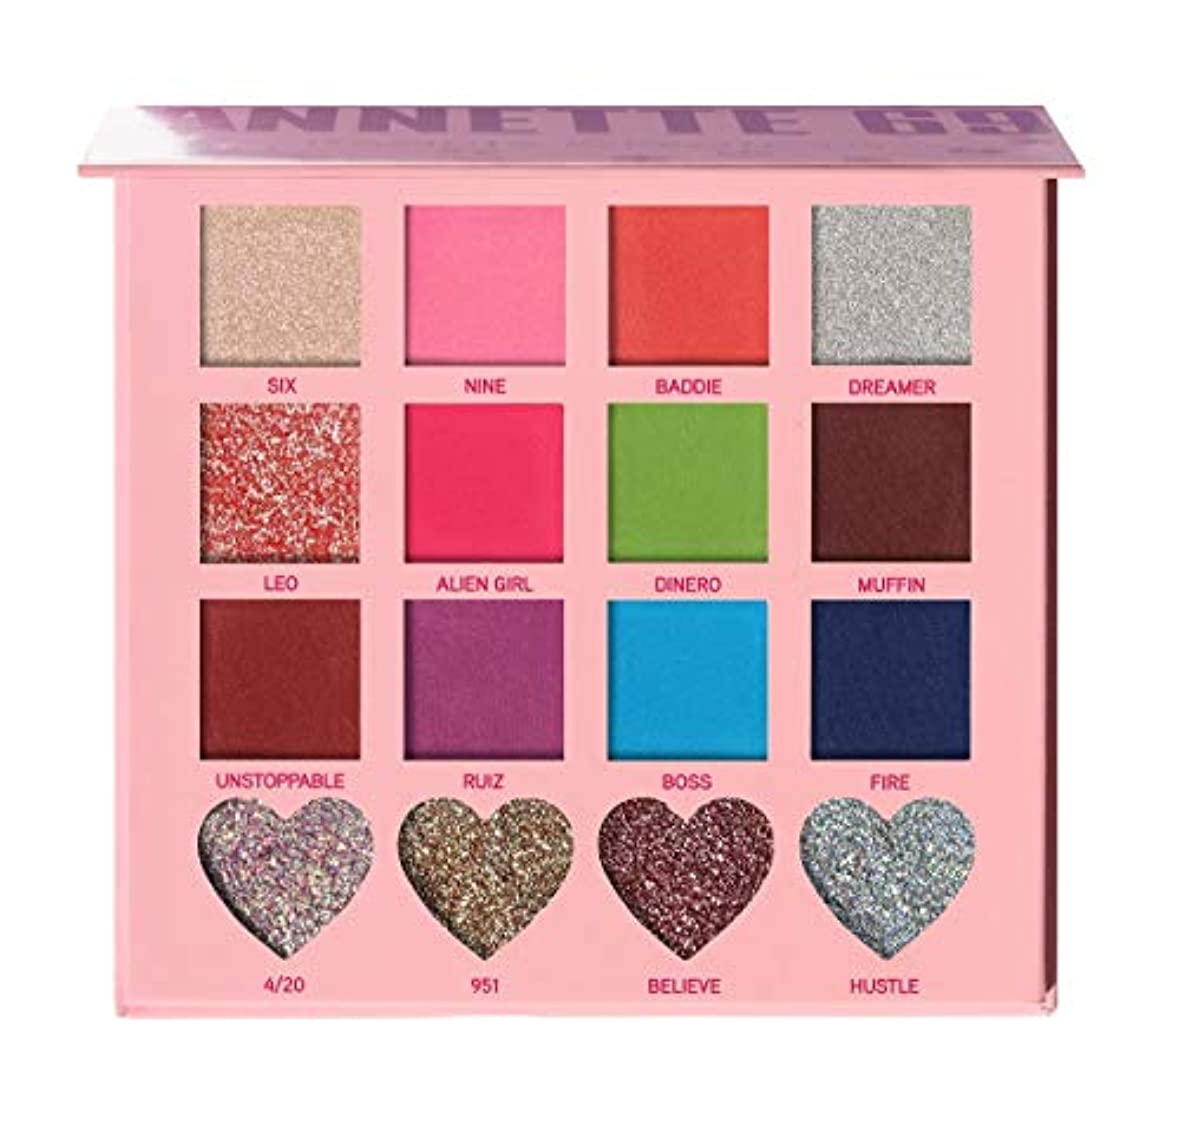 煙翻訳者命令BEAUTY CREATIONS x Annette 69 Eyeshadow Palette (並行輸入品)